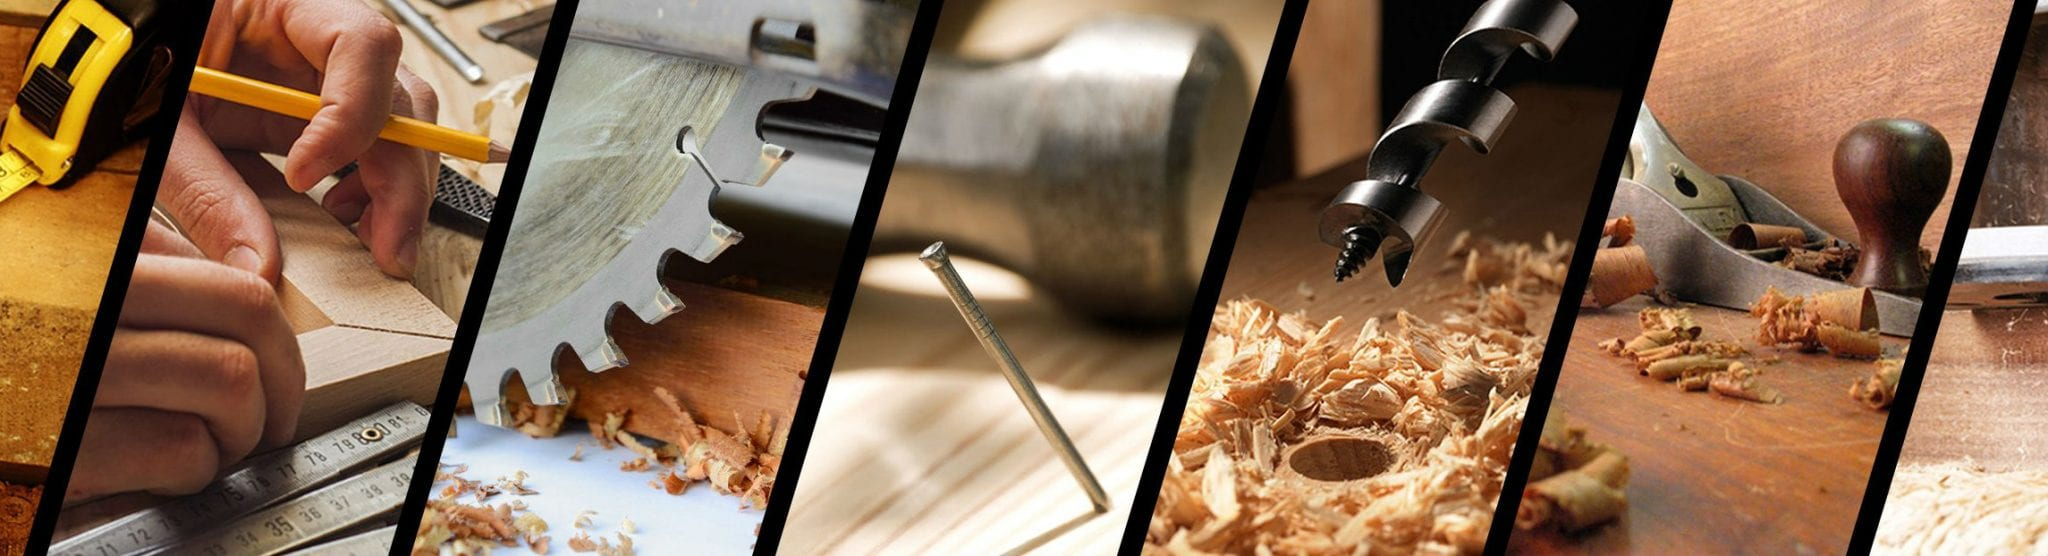 collage of carpenter tools and skills